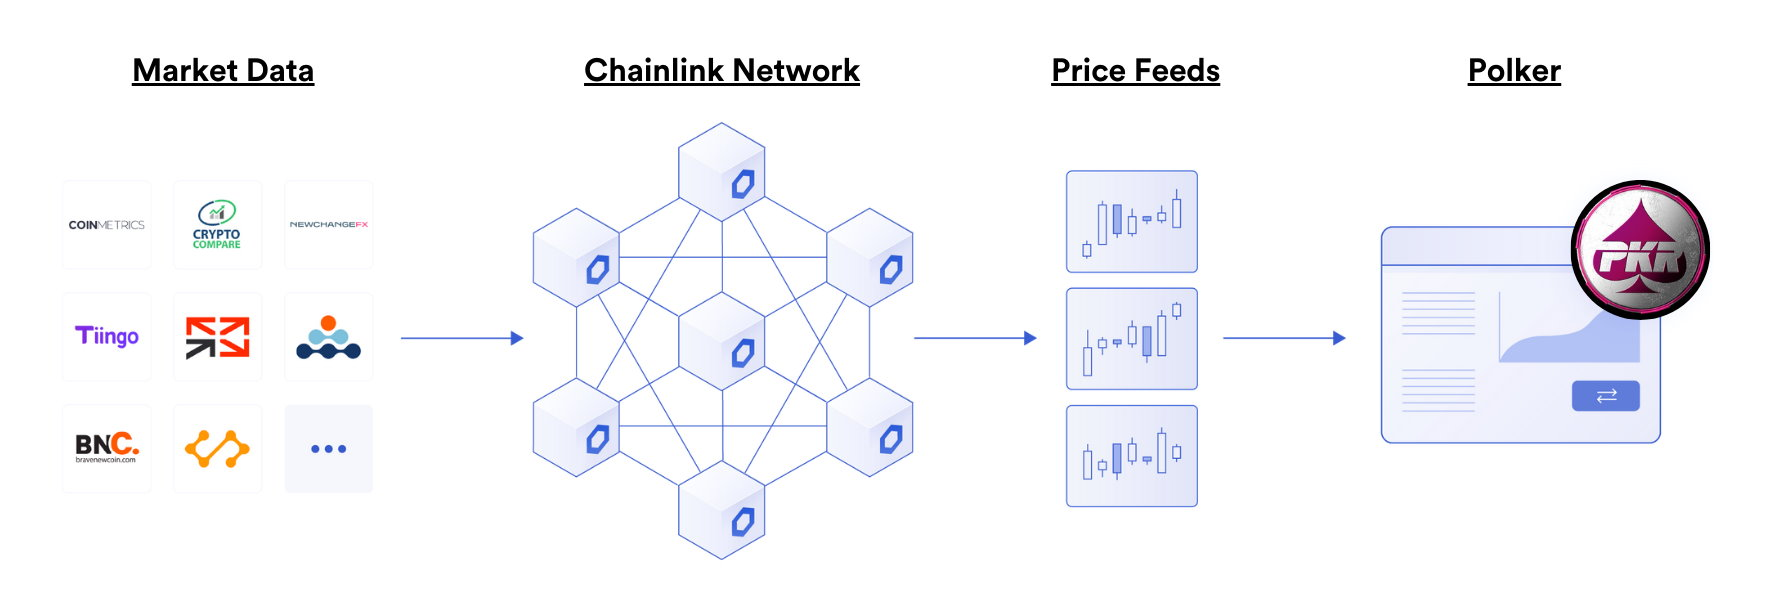 Polker Is Incorporating Chainlink Price Feeds Into Its Multi-Crypto Industry-- Funded Bitcoin Information 2